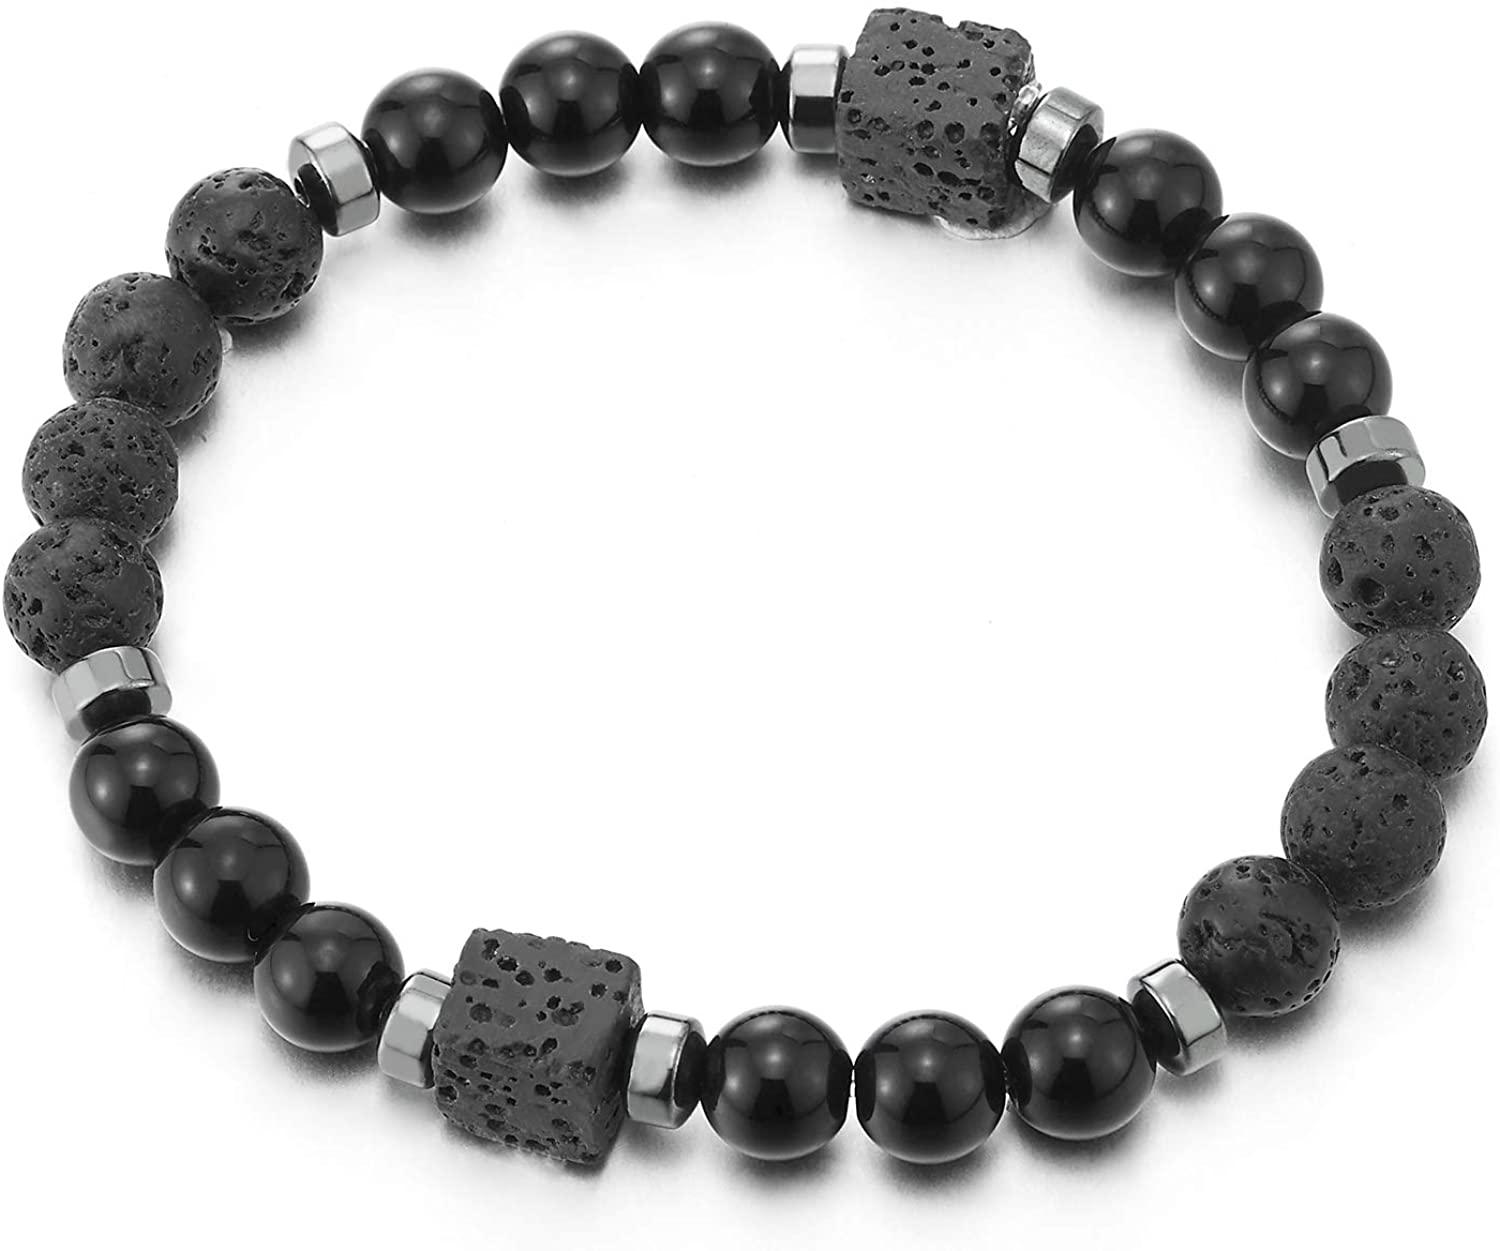 COOLSTEELANDBEYOND Mens Womens 8mm Black Onyx Volcanic Lava Stone Beads Bracelet with Cube Beads Charms, Stretchable